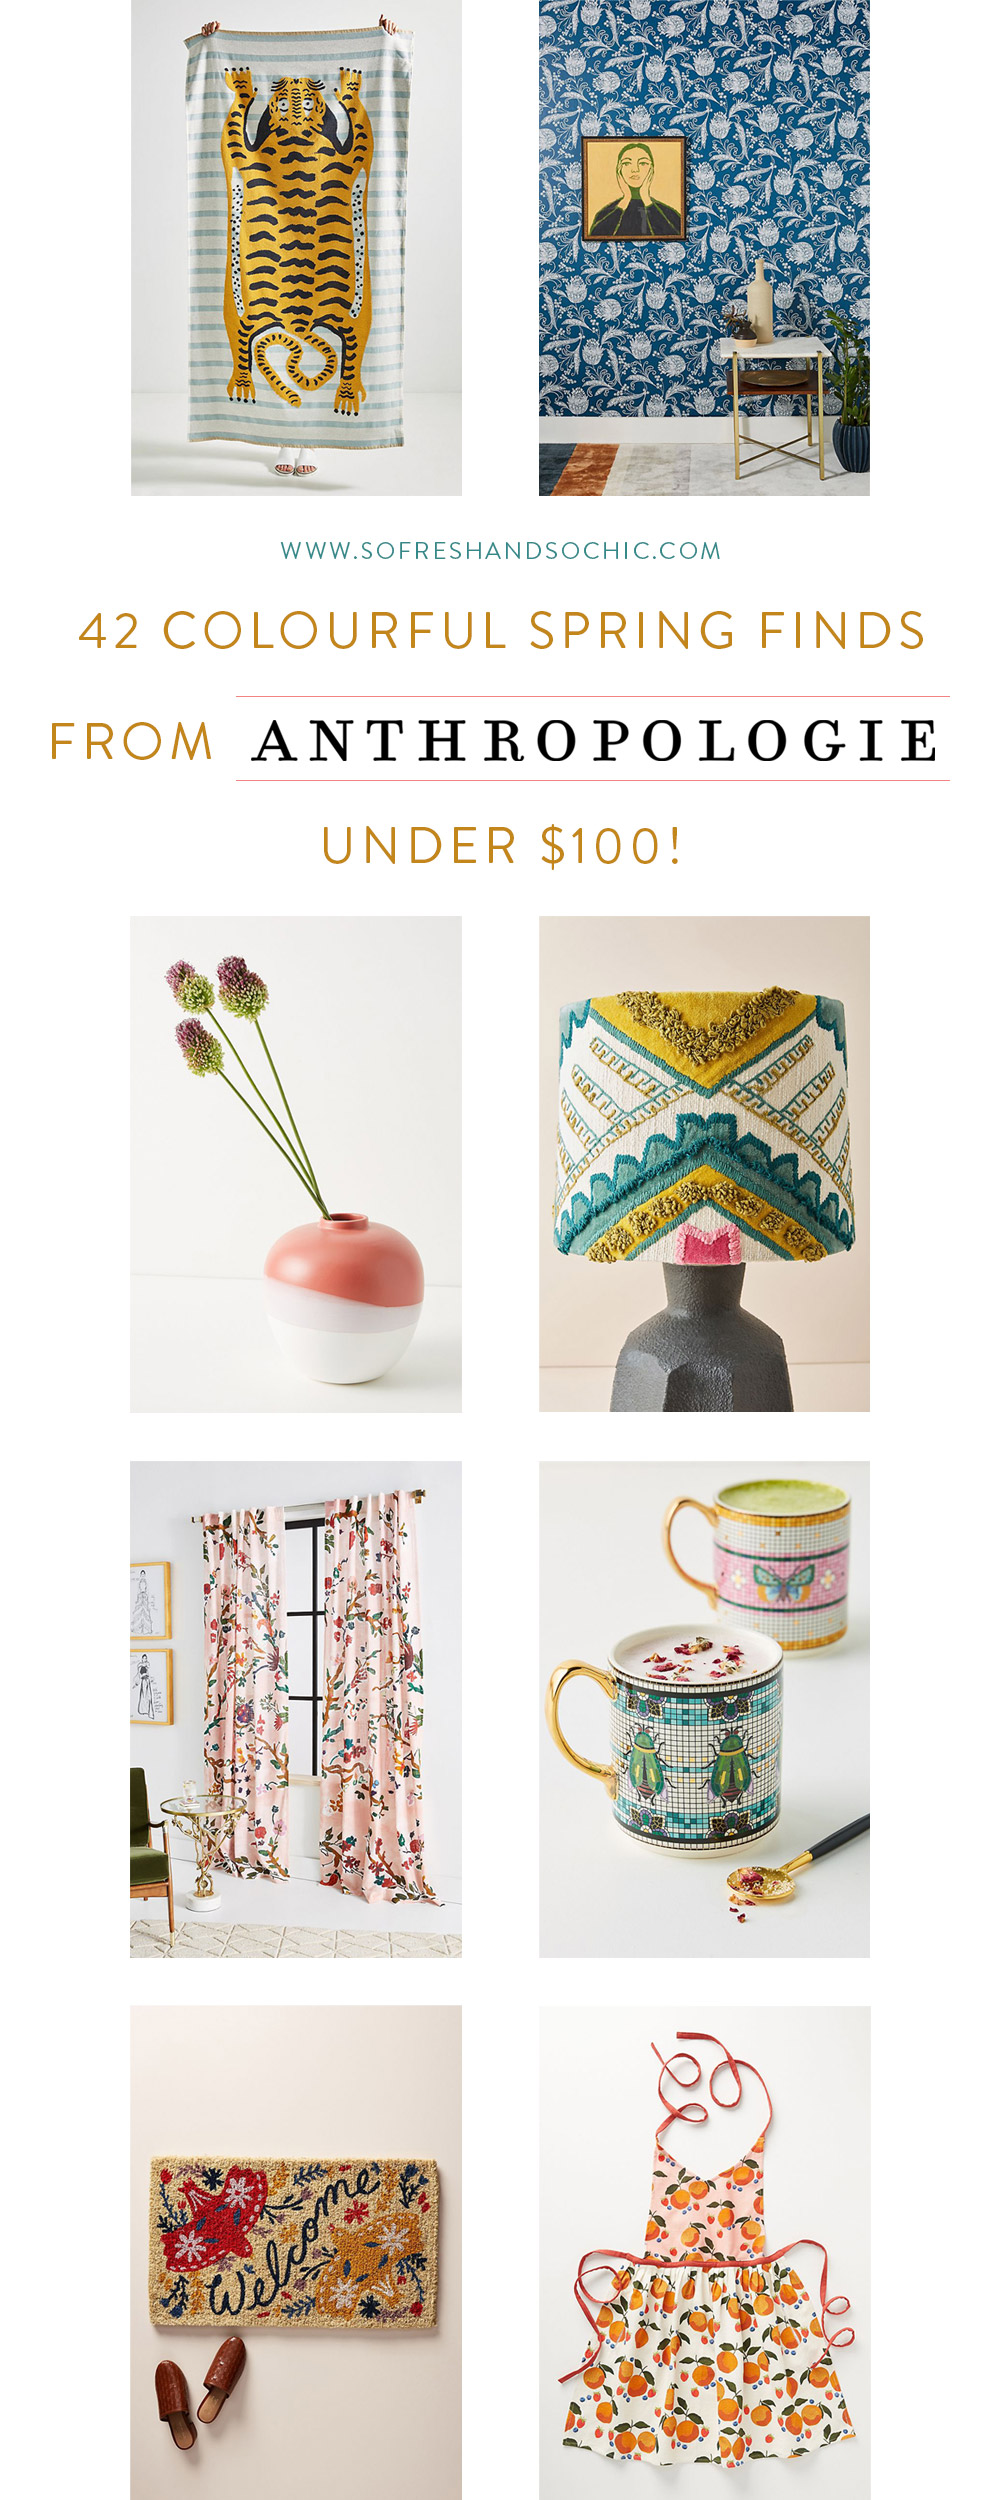 42 Colourful Spring Finds from Anthropologie under $100! // So Fresh and So Chic